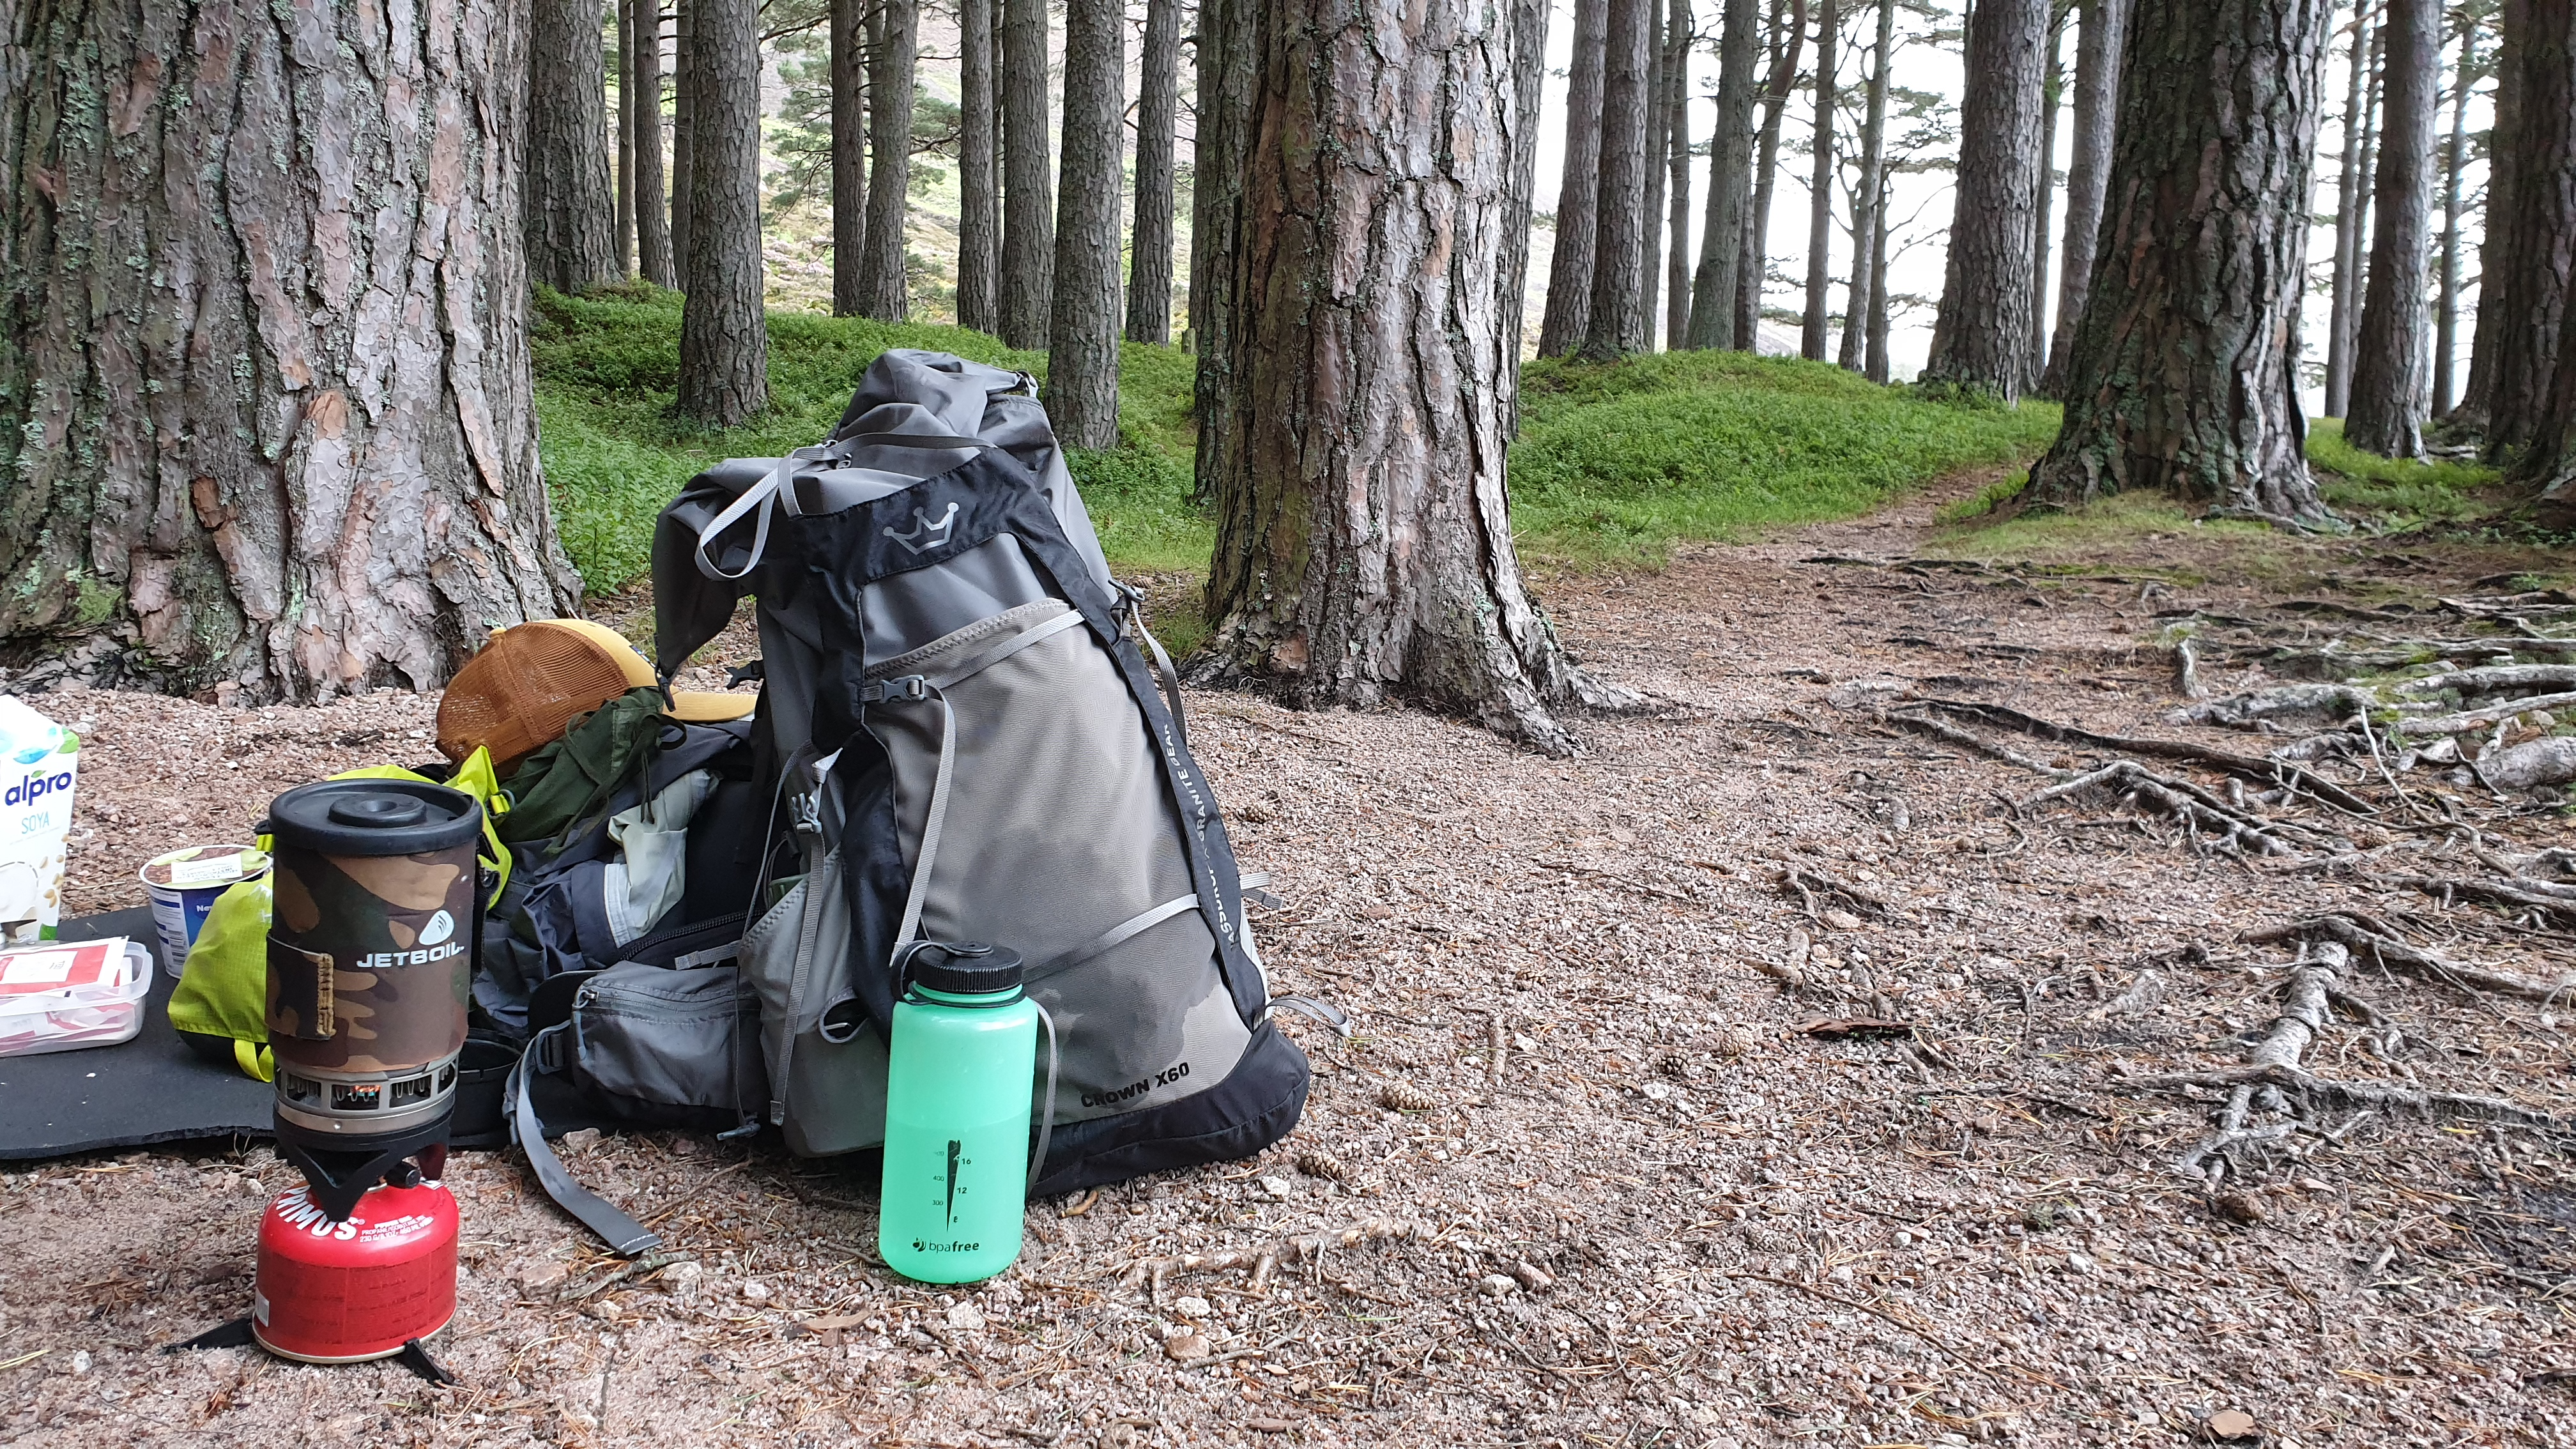 Massdrop x Granite Gear Crown X60 backpack review outdoors jetboil nalgene soy milk